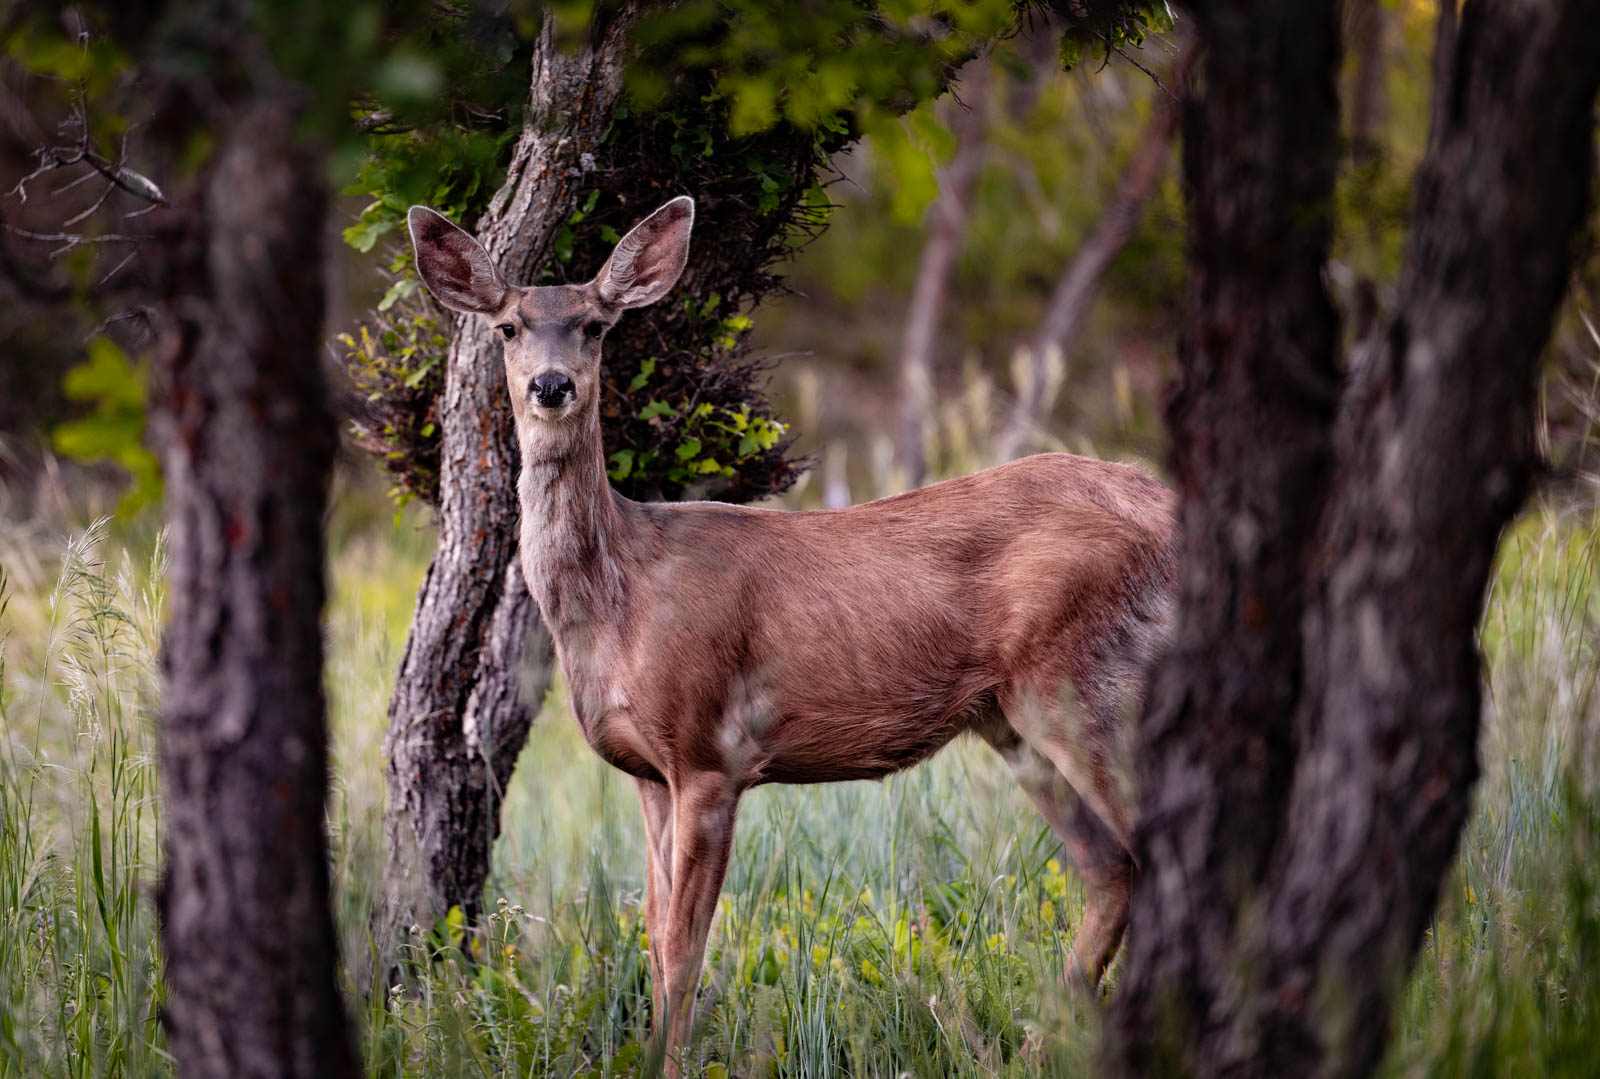 We spotted this deer on our walk.